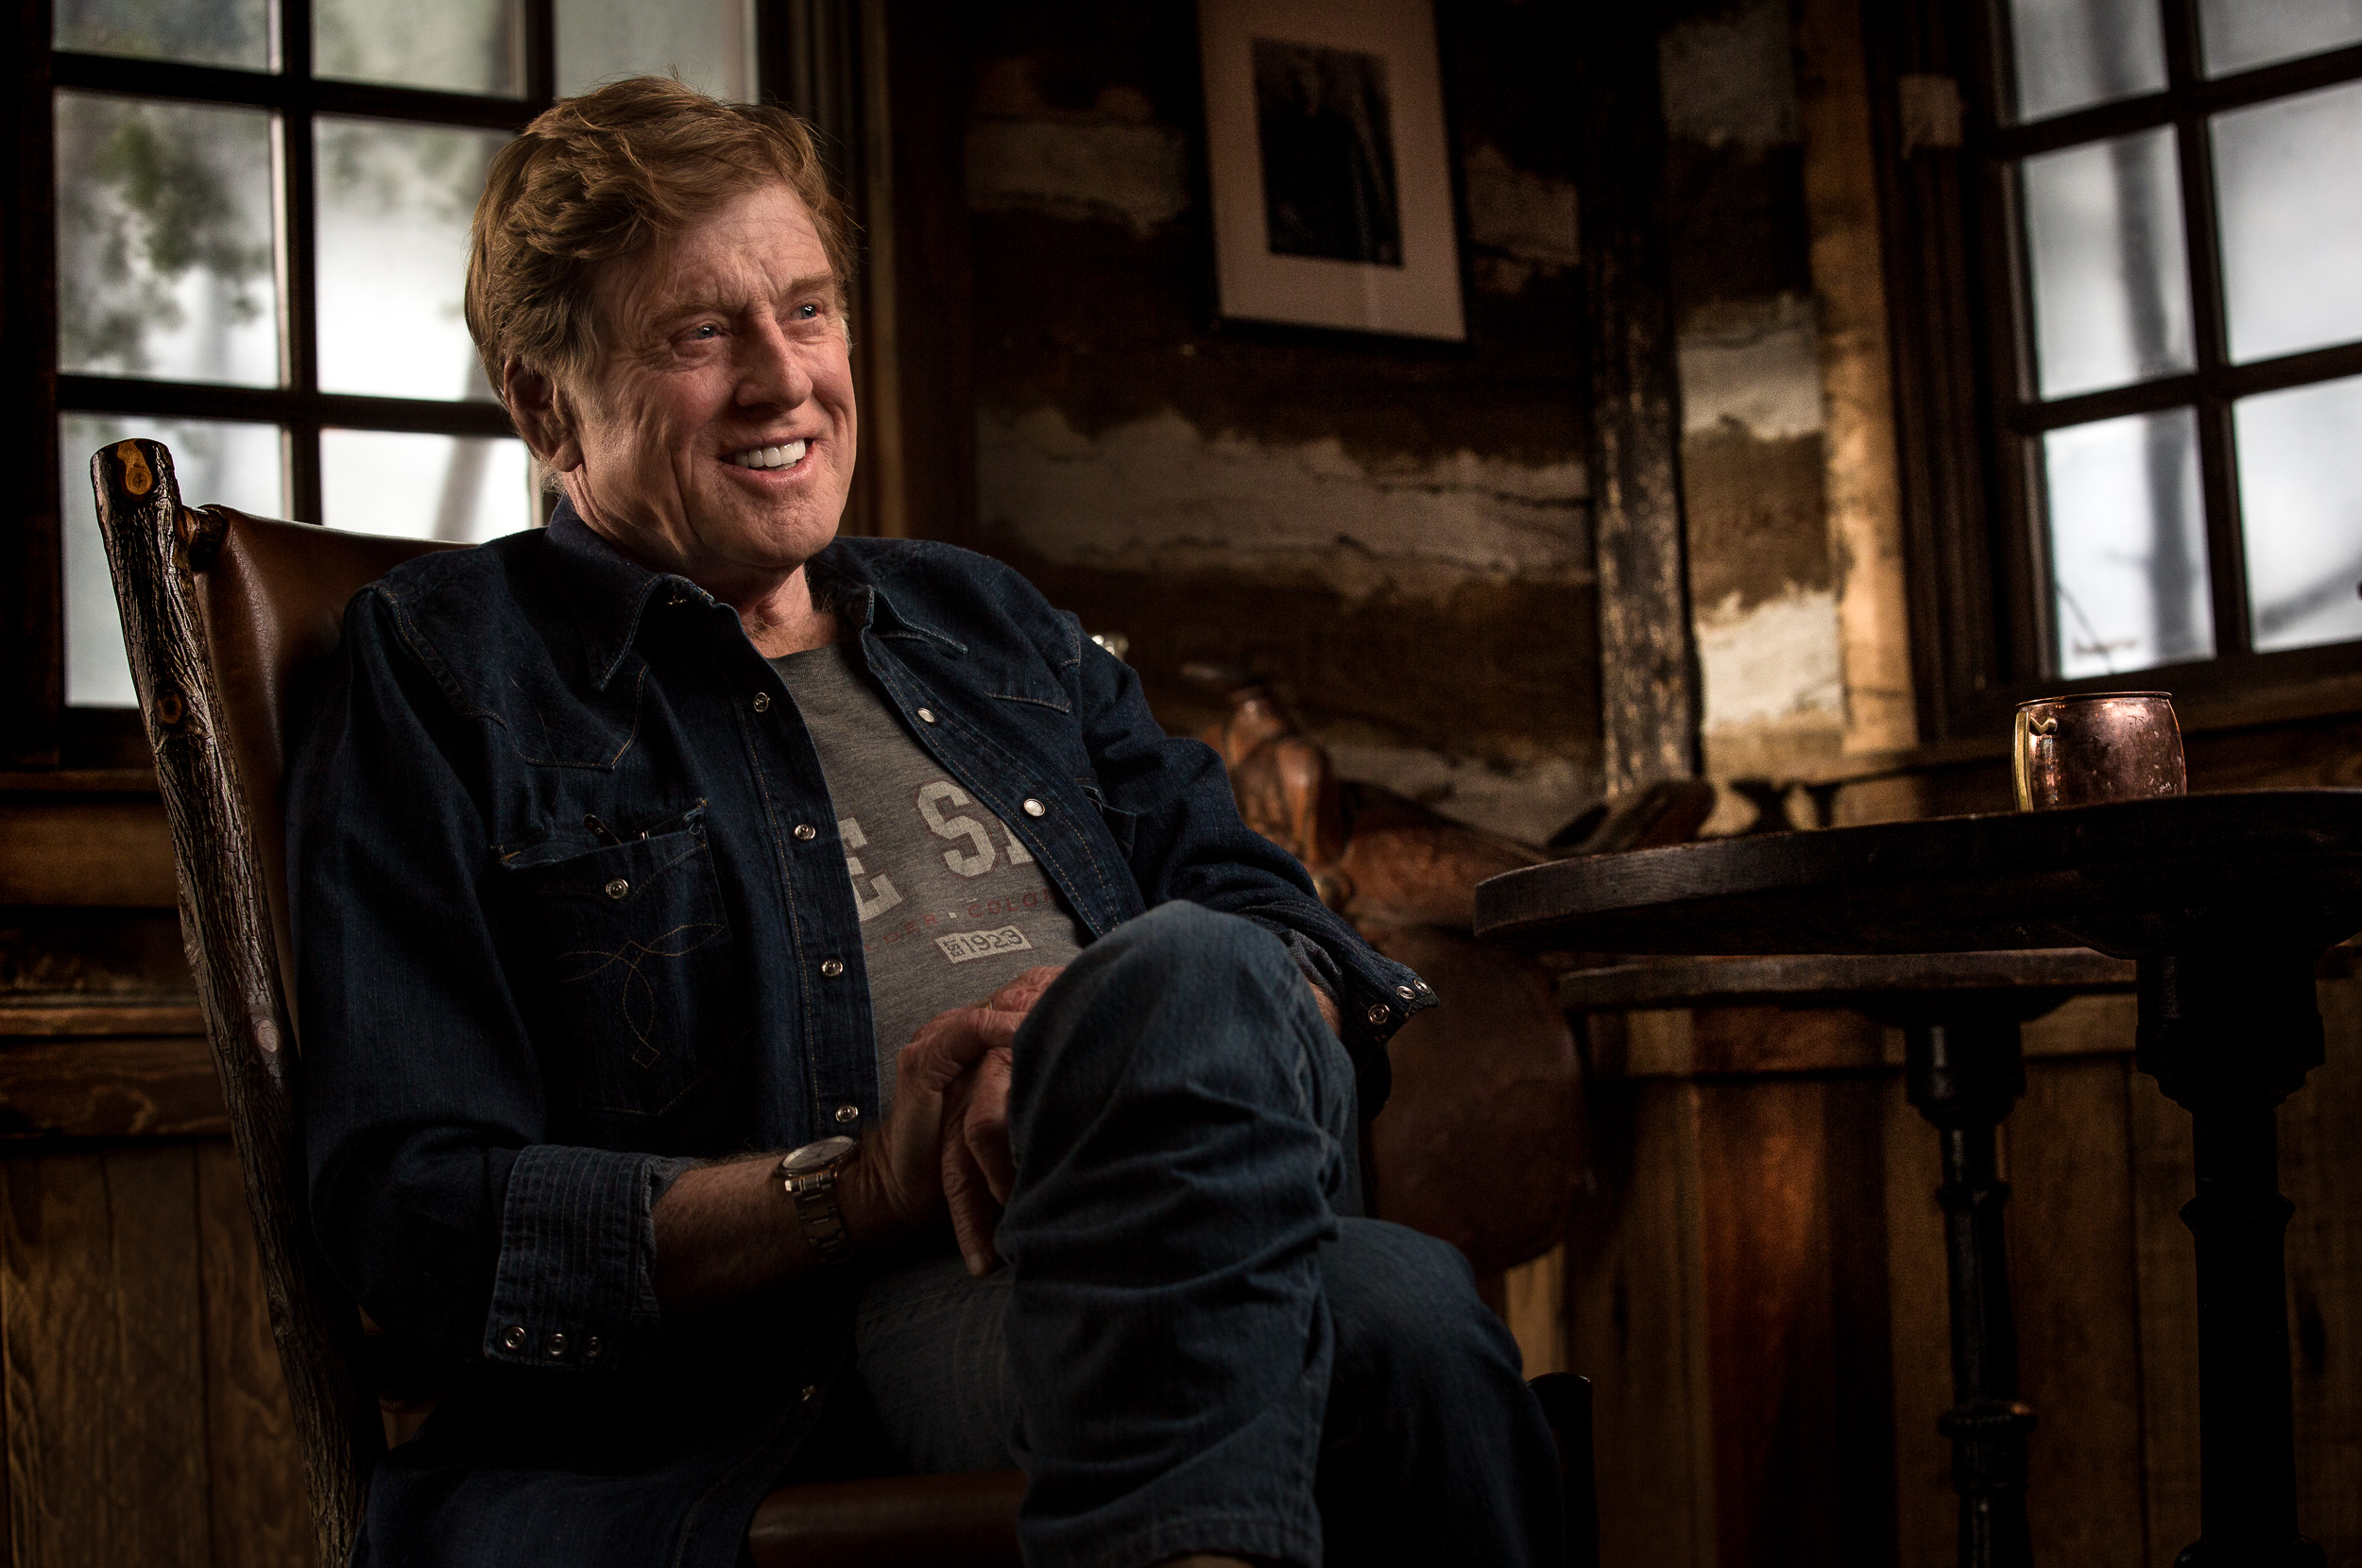 Robert Redford at Sundance Lodge